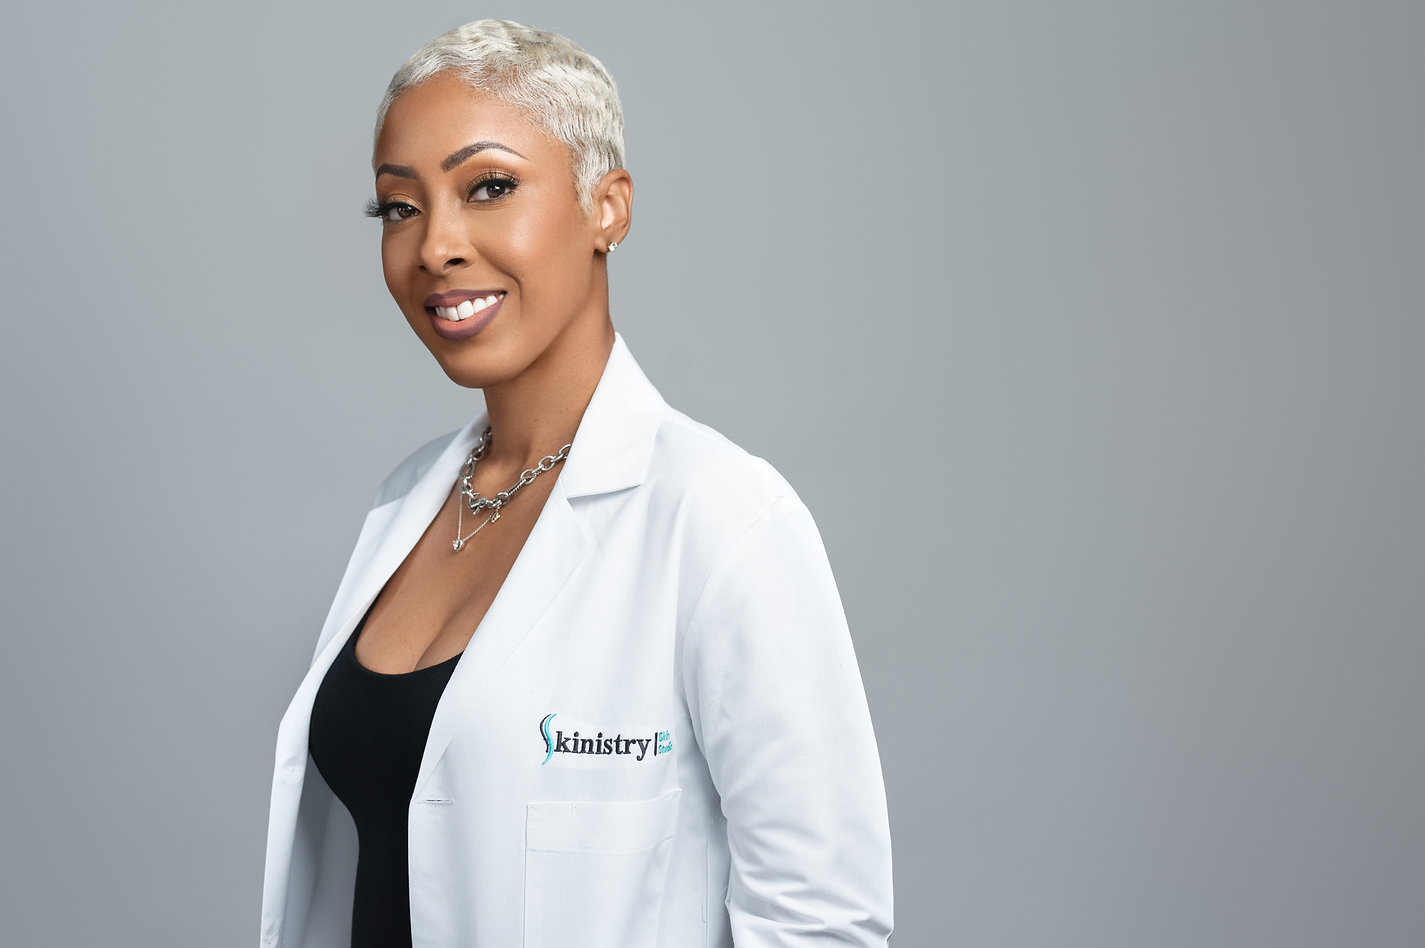 Simone Gibson, Medical Esthetician and Founder of Skinistry Bahamas